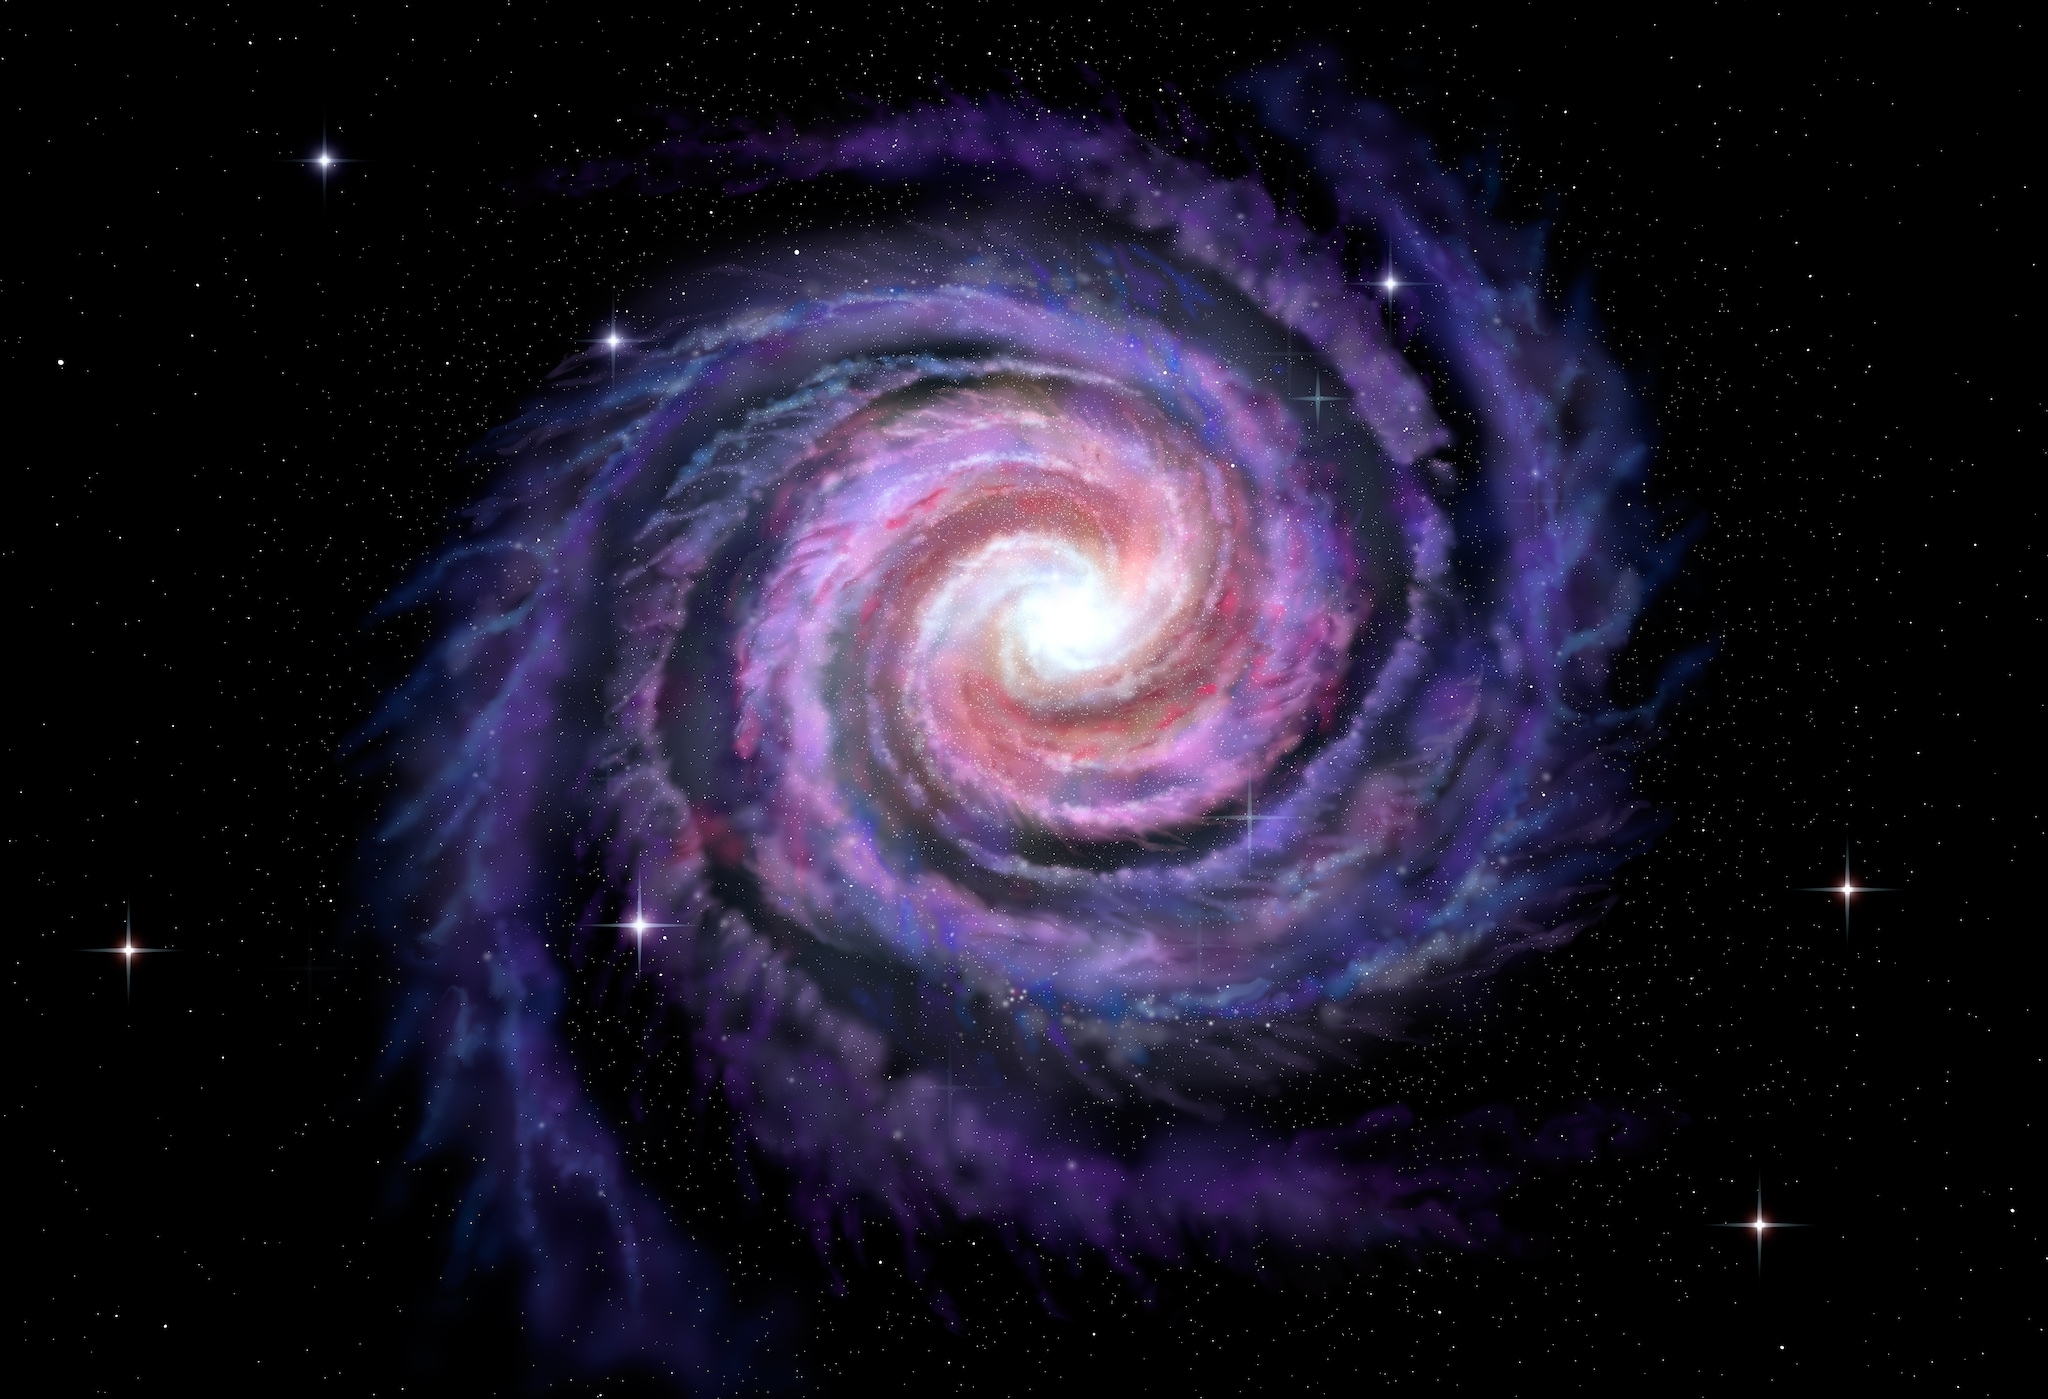 Space, Milky Way, Galaxy, Galaxies Flybys, Spiral Arms, Bulges of Galaxy,